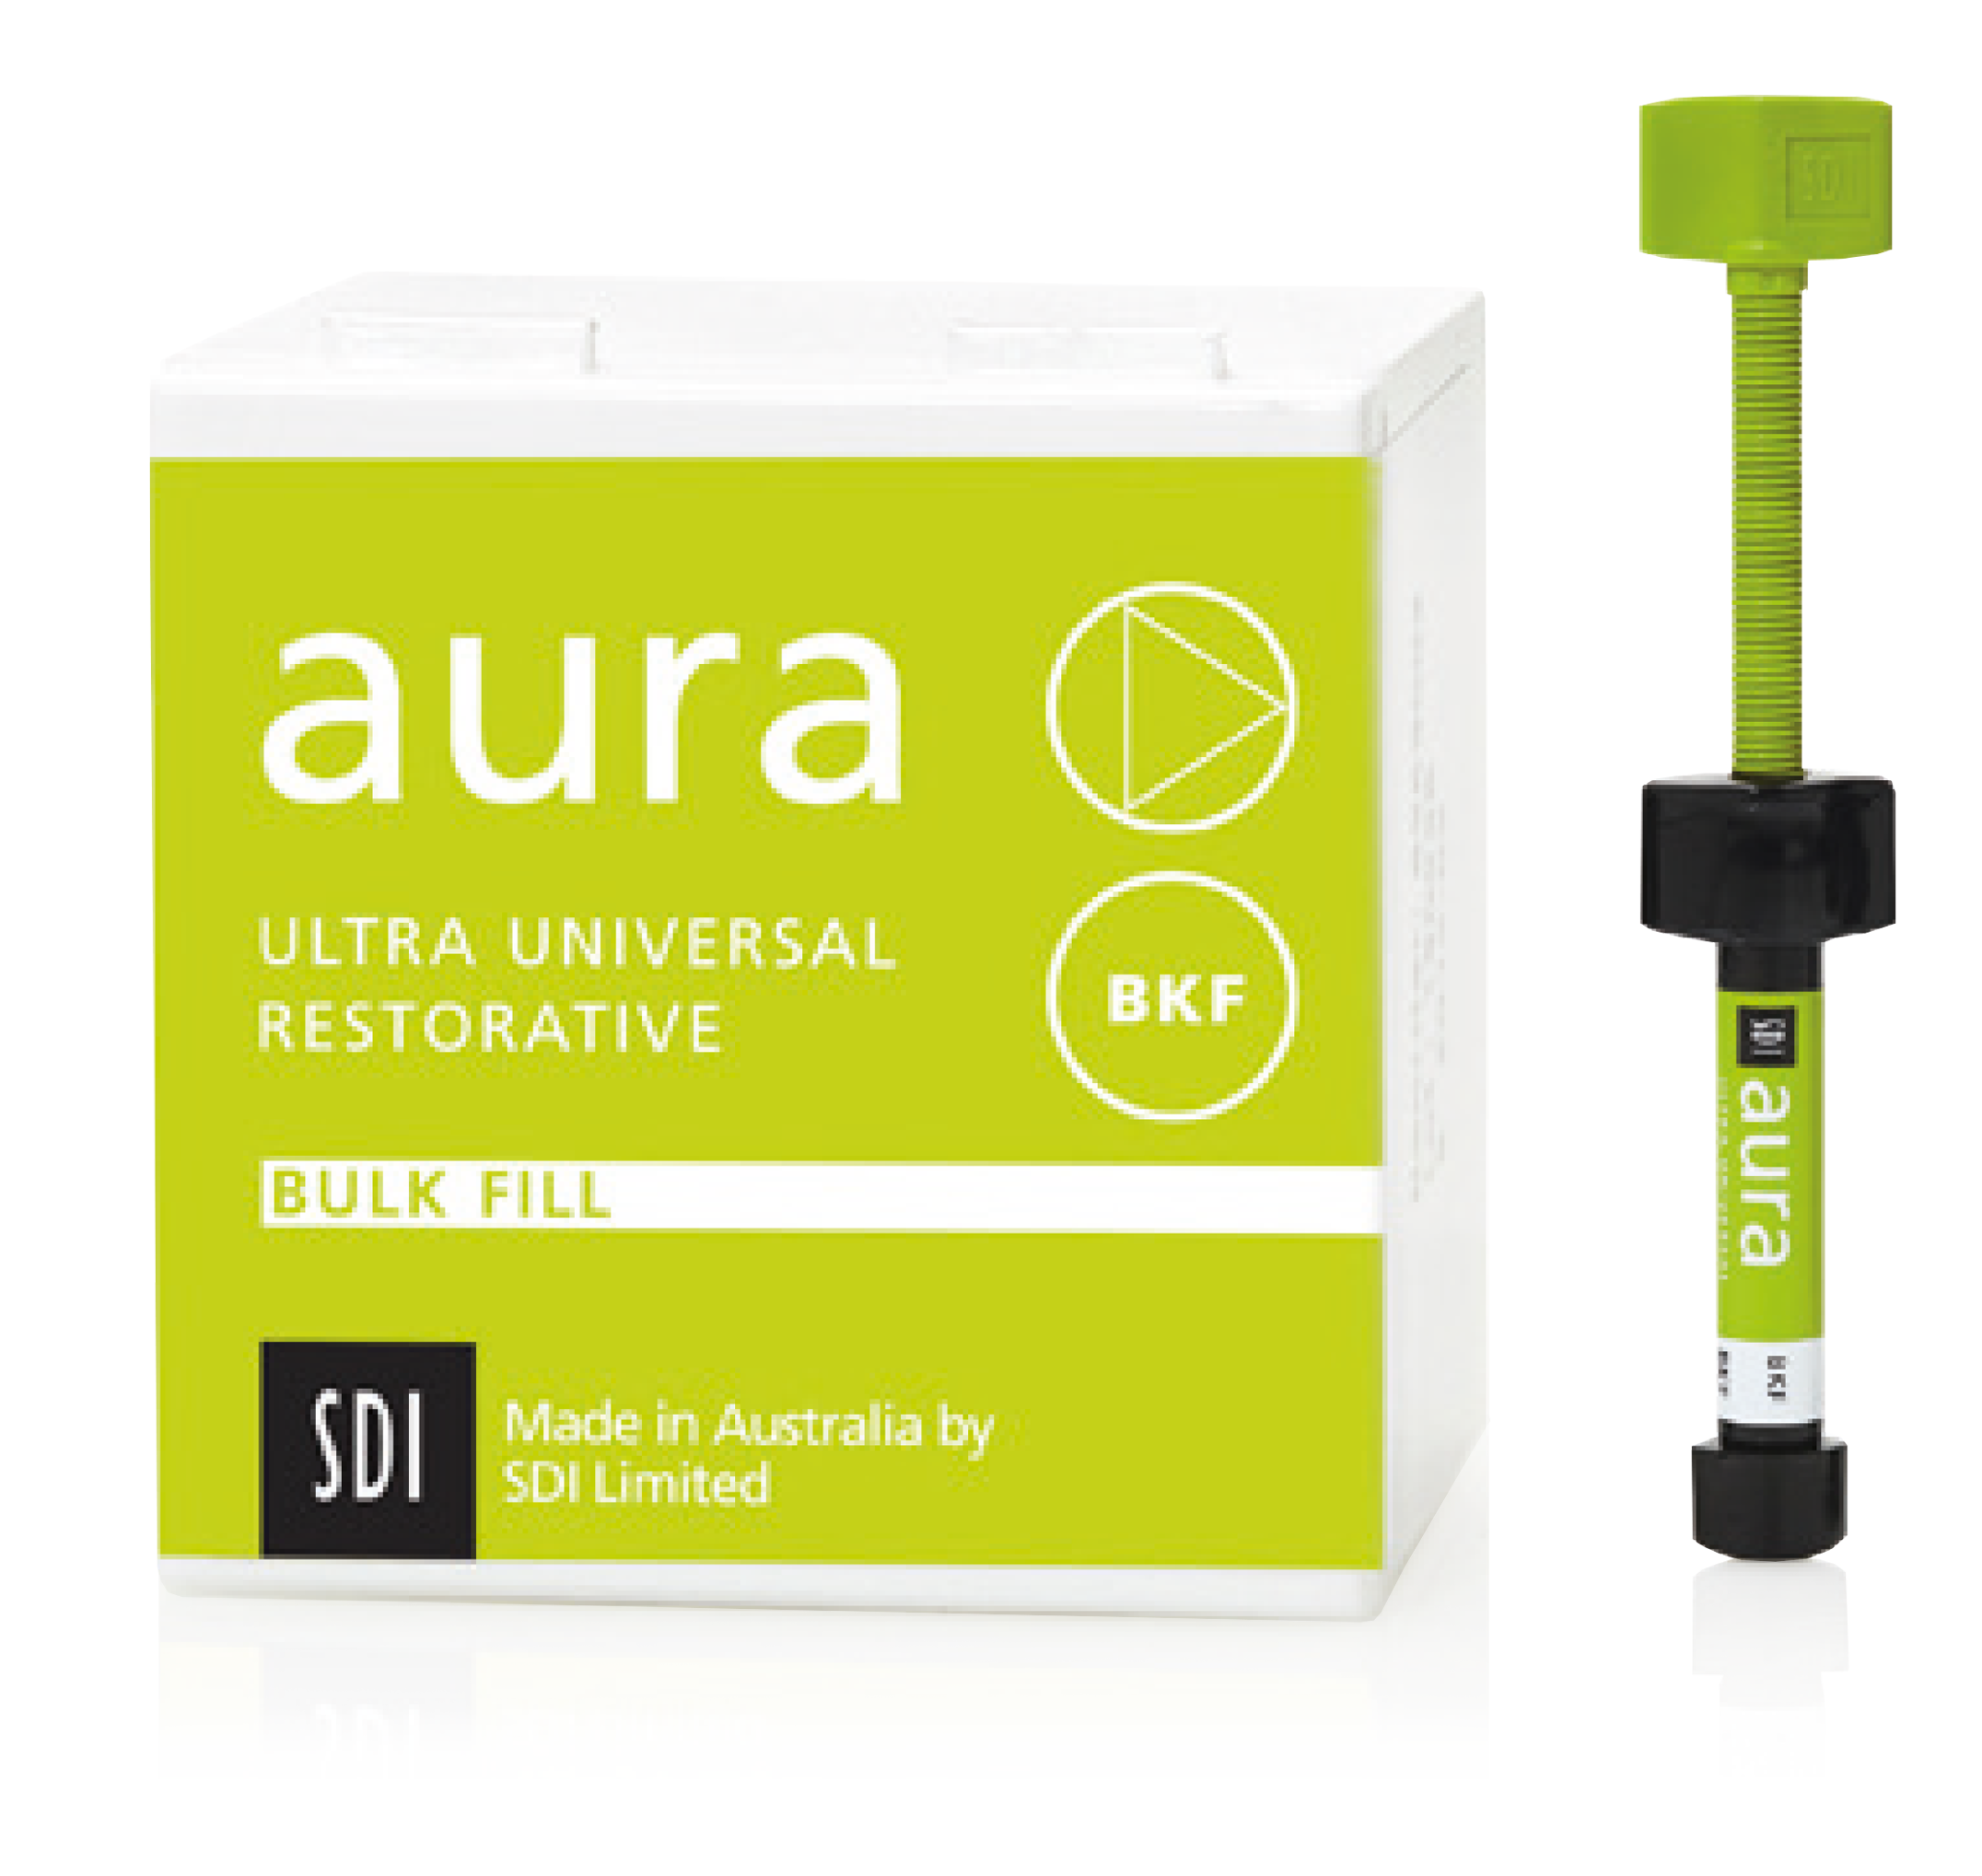 aura bulk fill box and unit